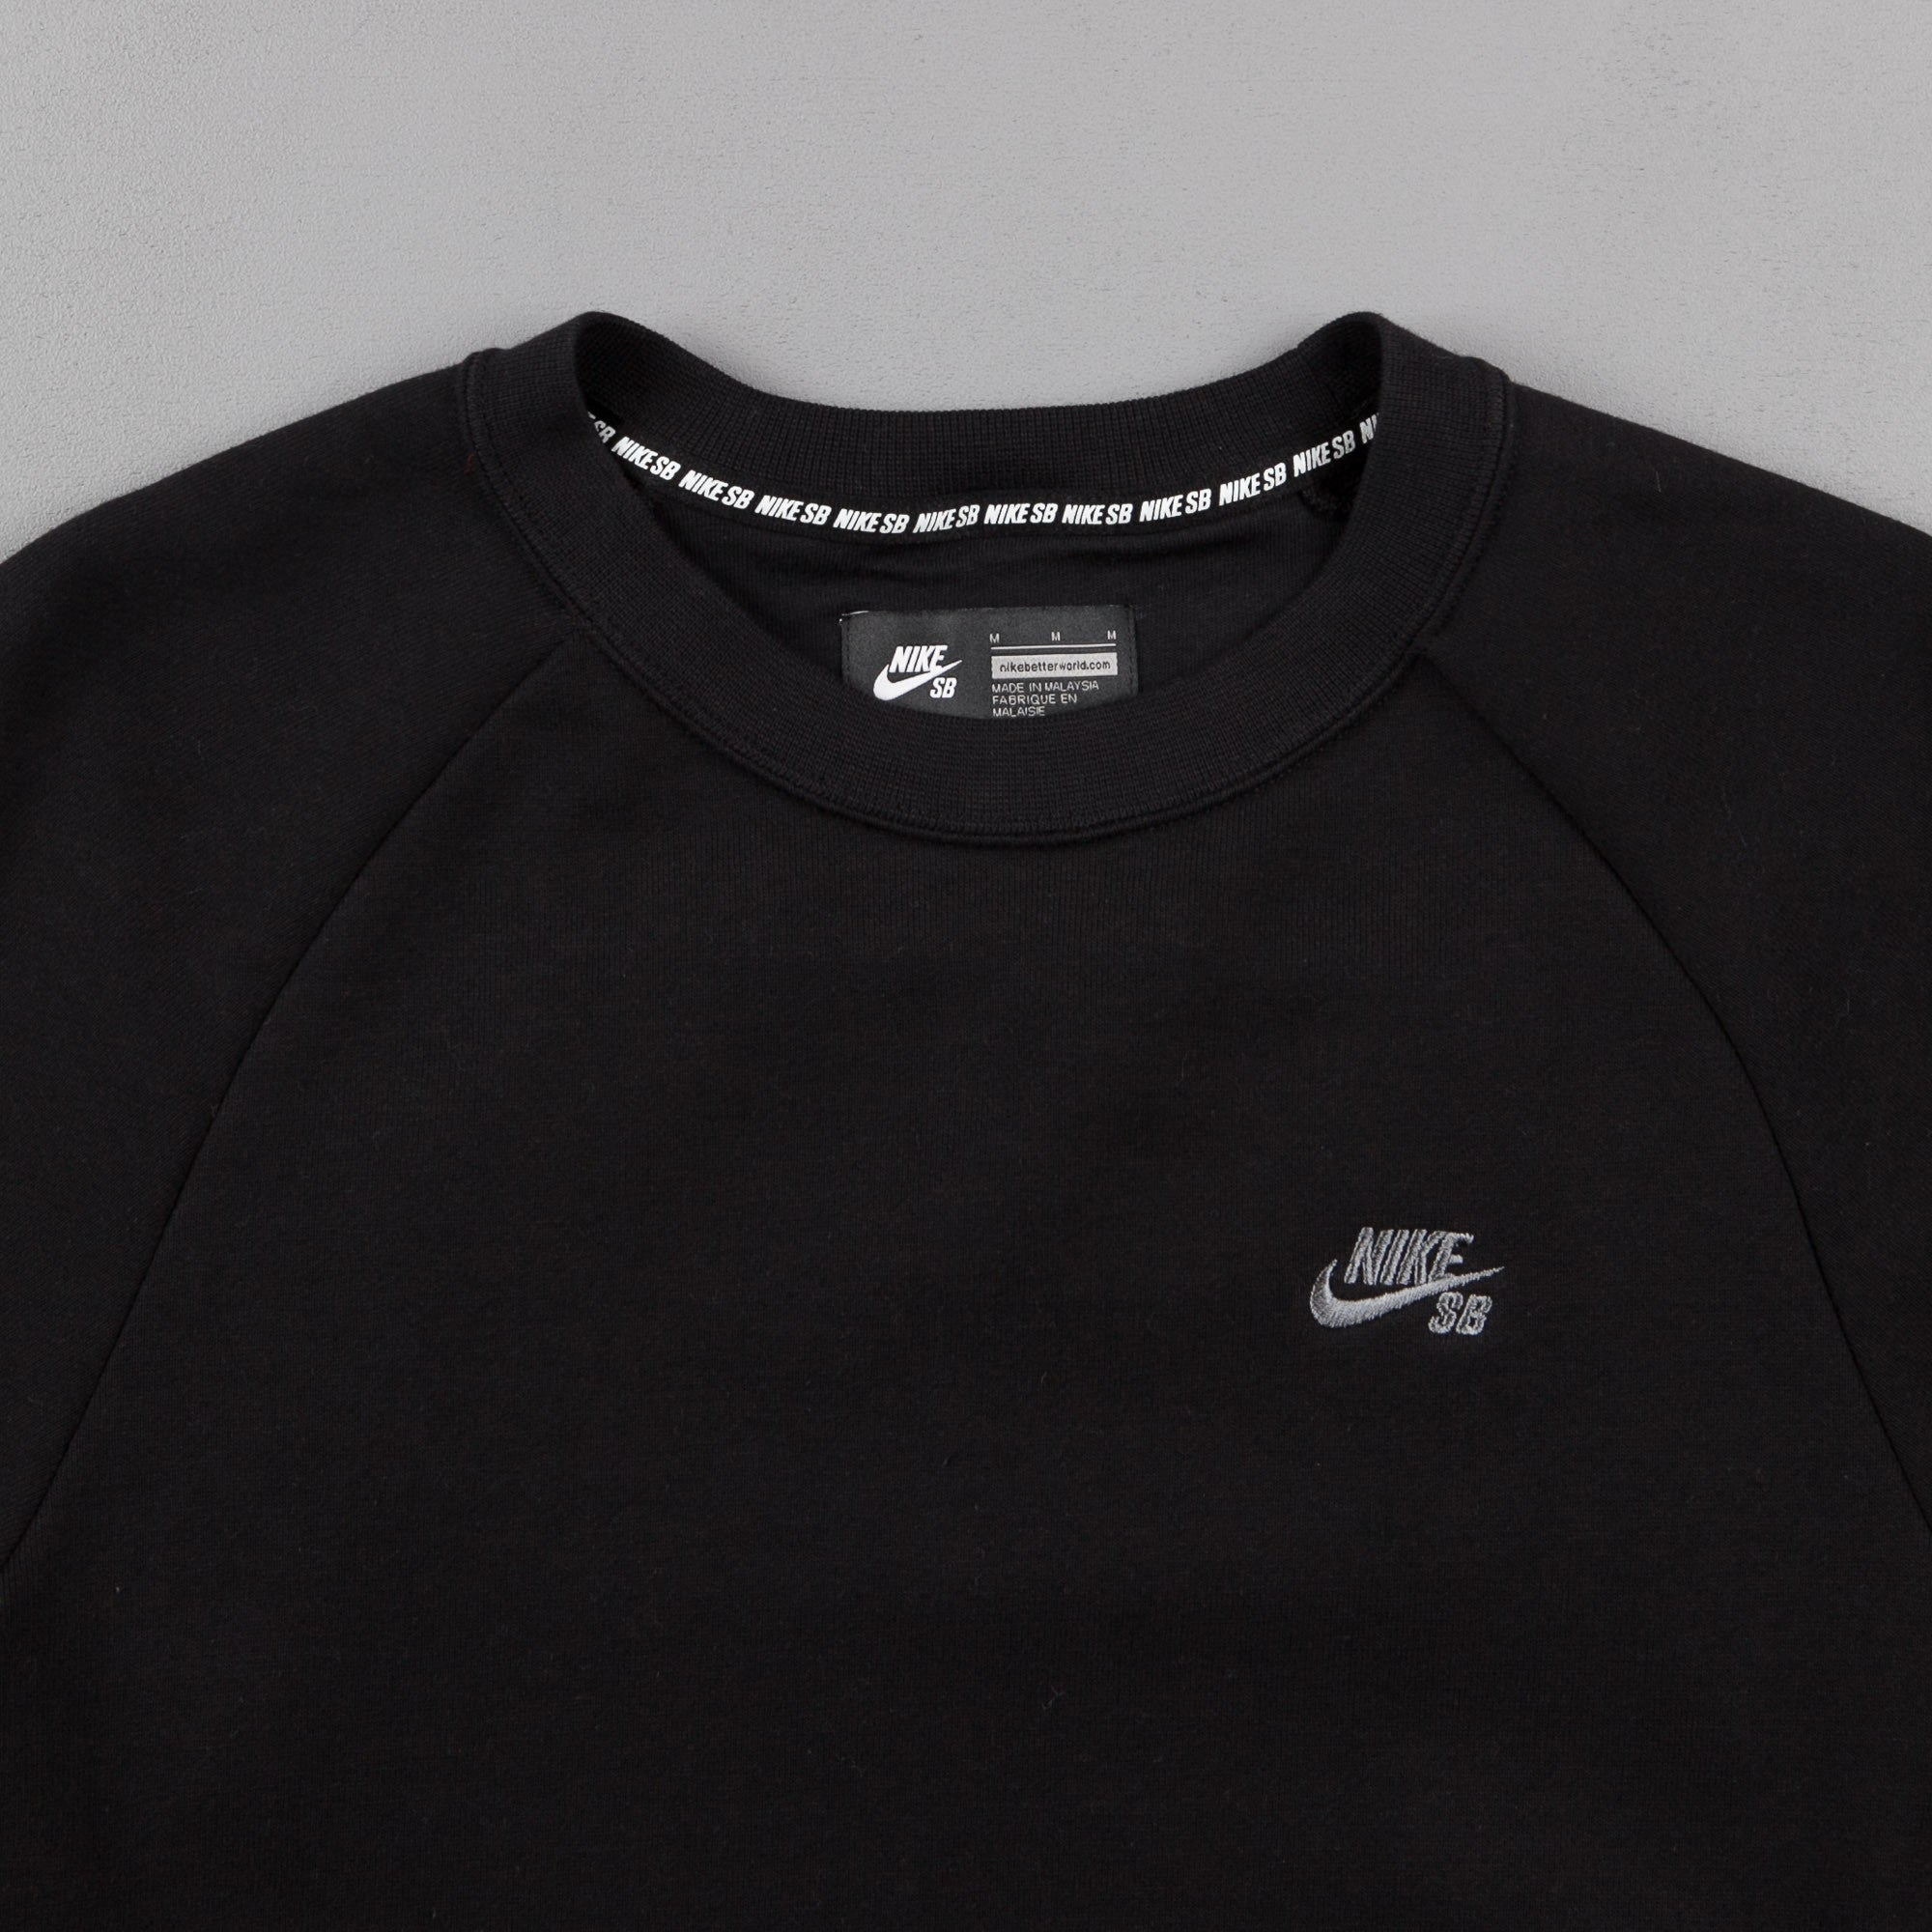 Nike SB Everett Crewneck Sweatshirt - Black / Cool Grey